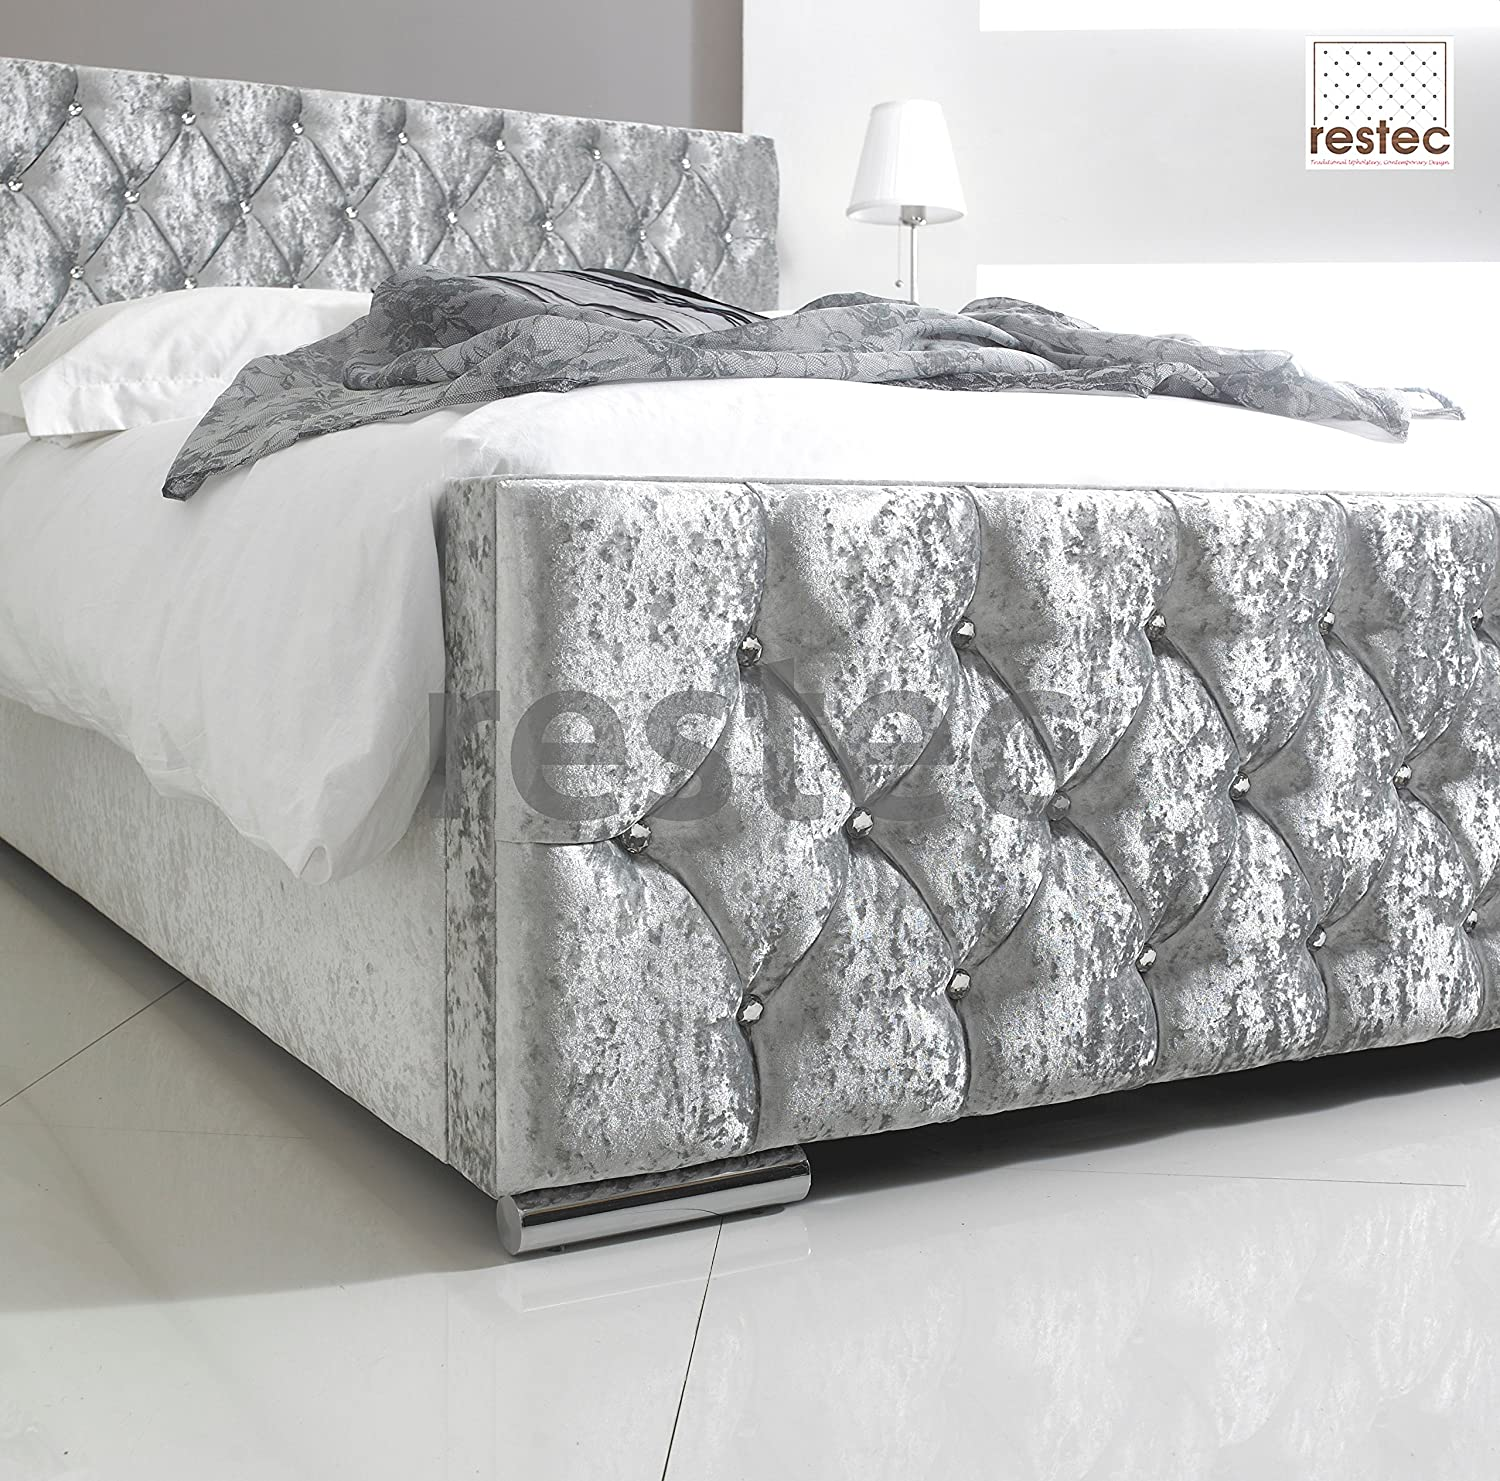 florida upholstered silver crush velvet bed frame in different size available 3ft bed frame by comfycraft amazoncouk kitchen u0026 home